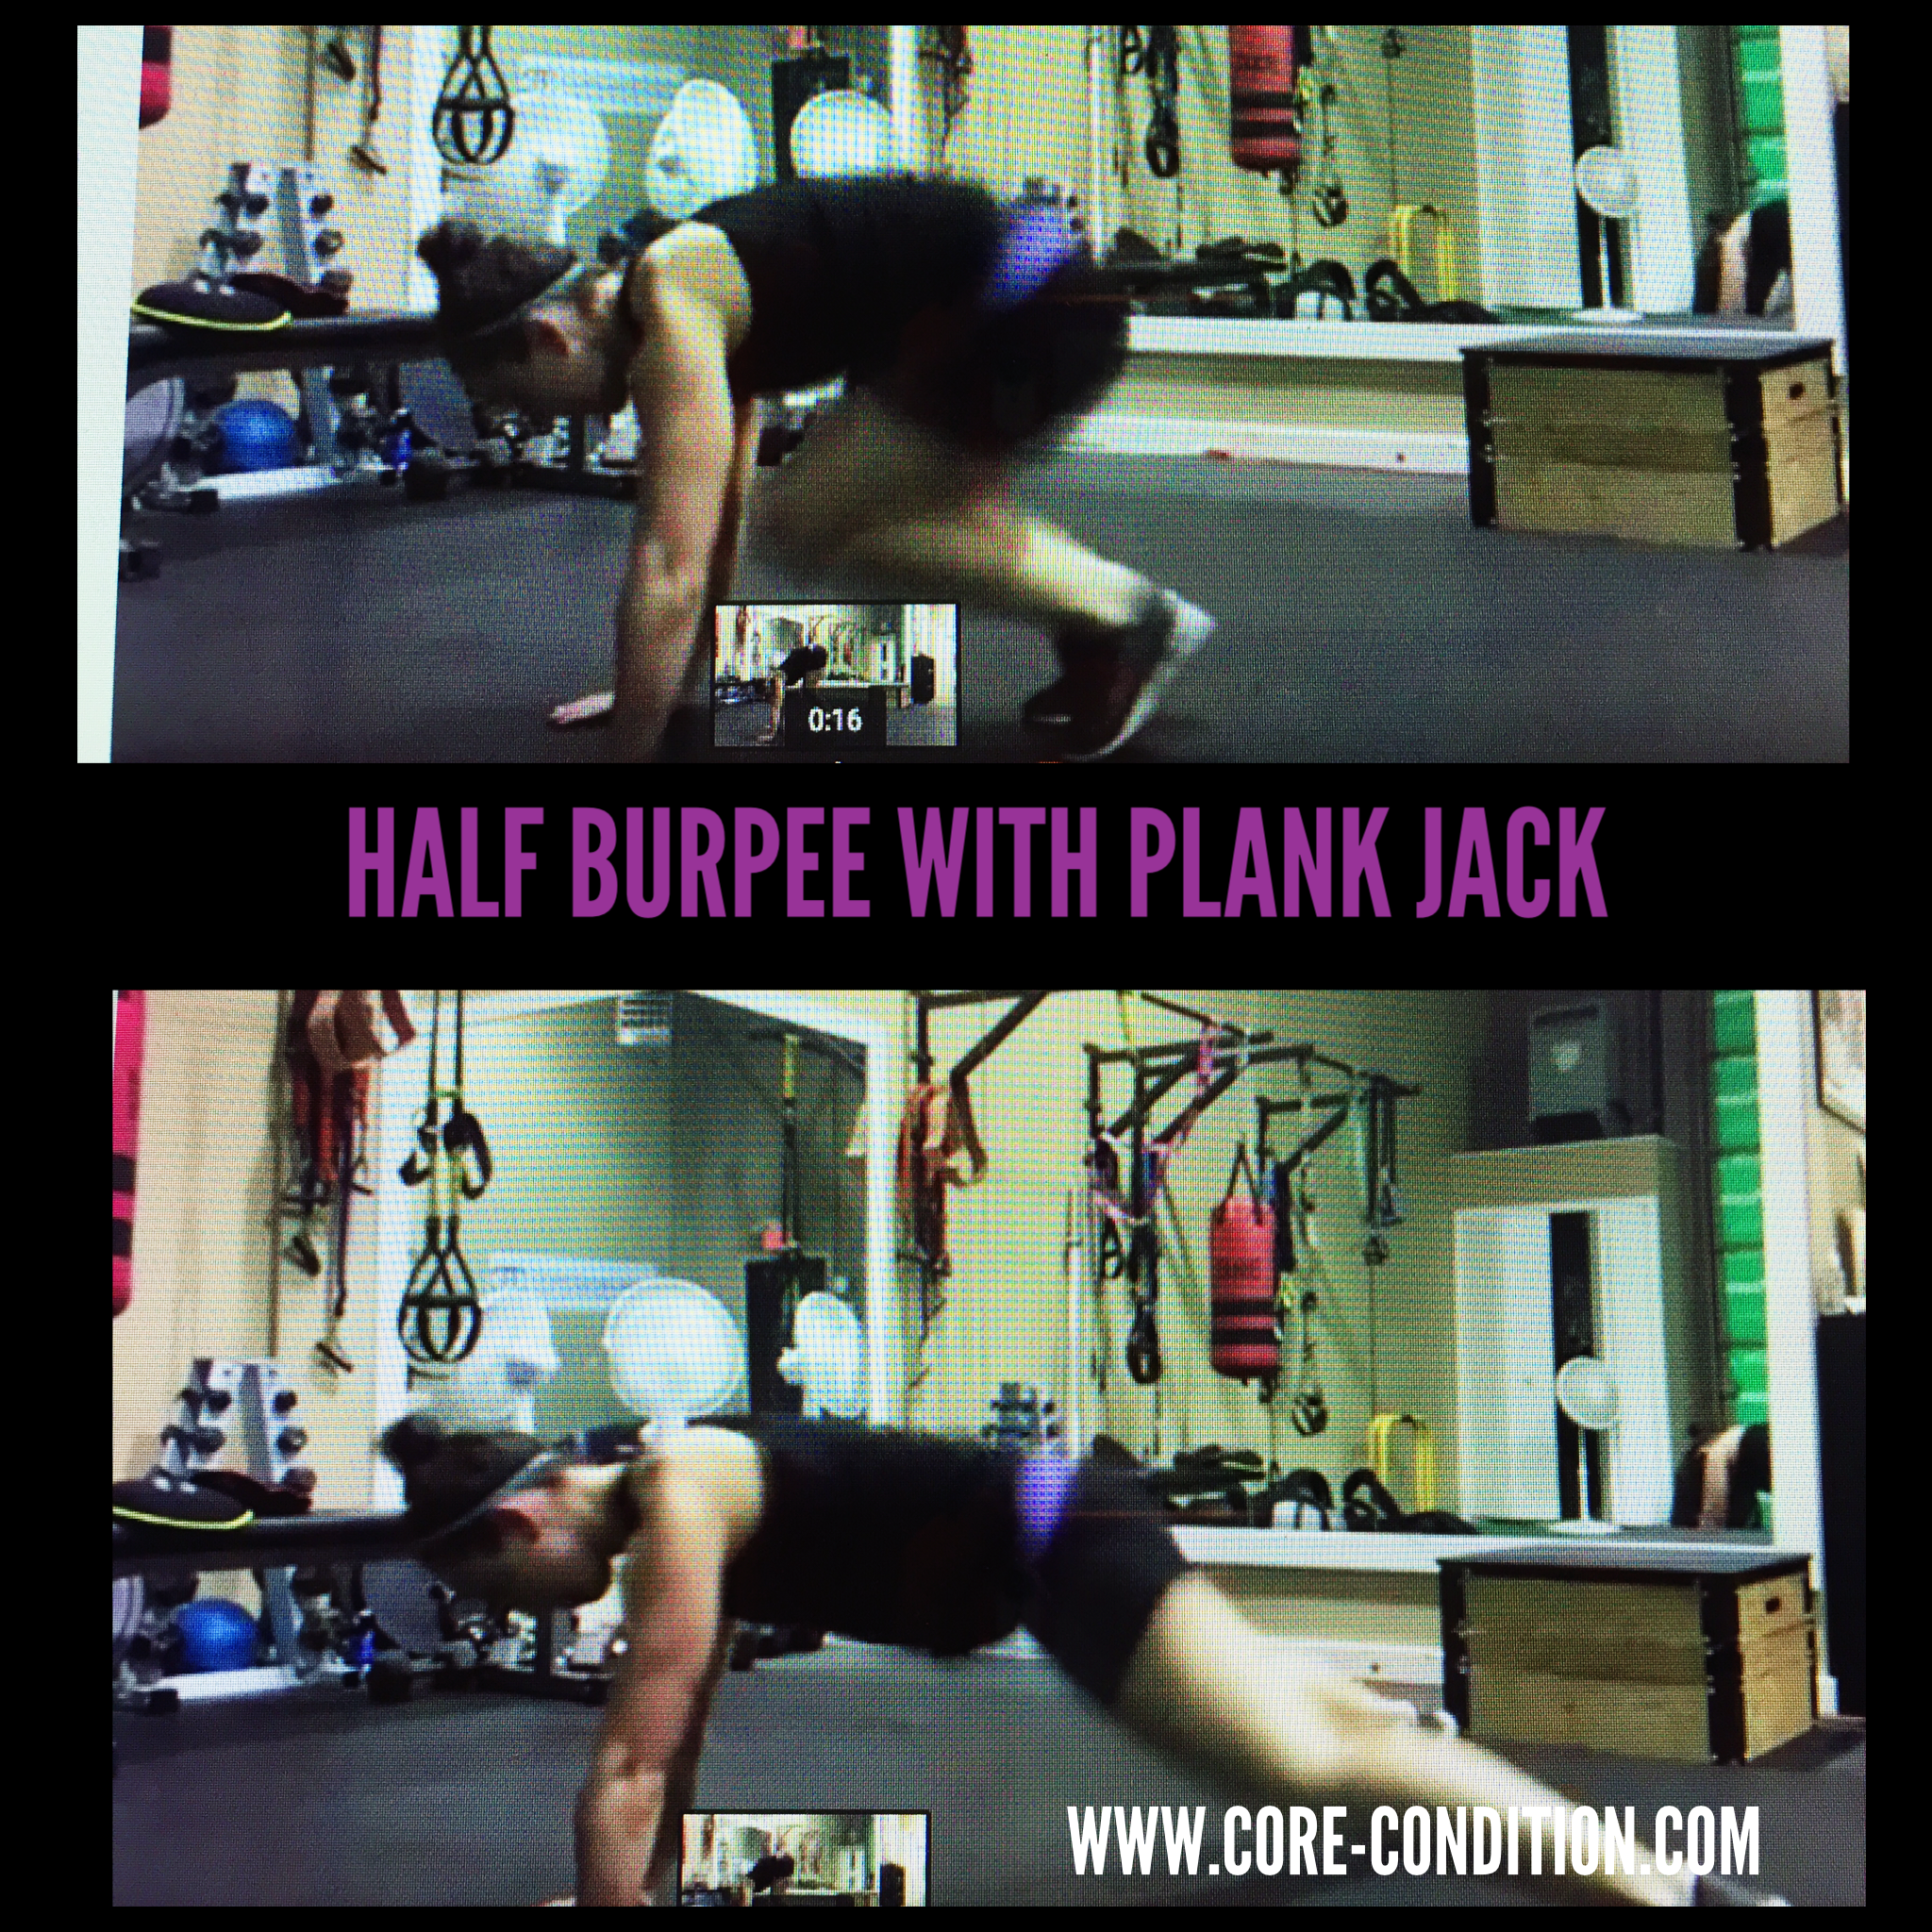 Add This Exercise To A Workout to Burn More Calories & Work The Abs!